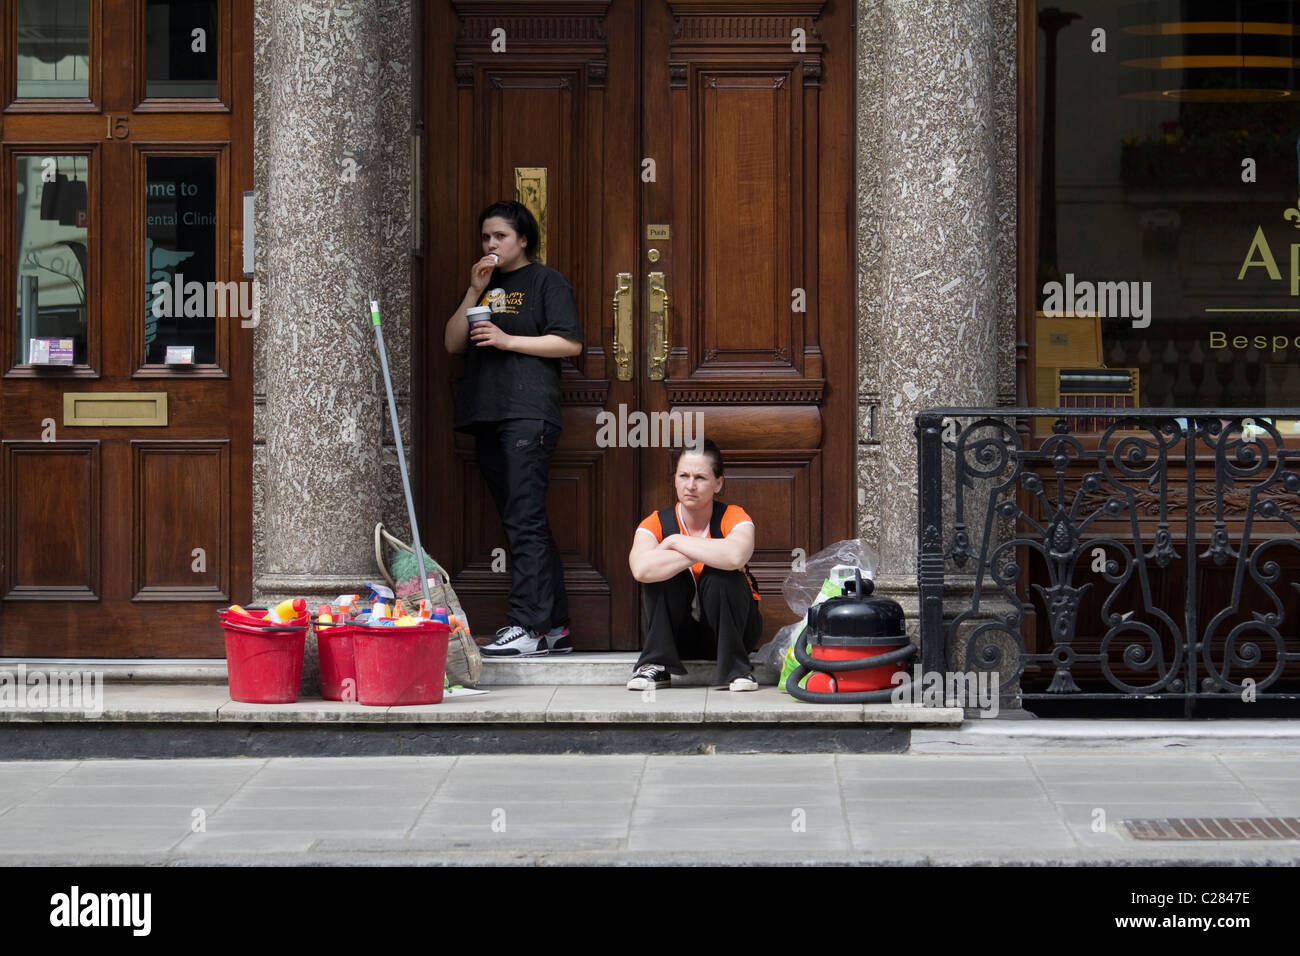 Office cleaners waiting outside office, Central London - Stock Image